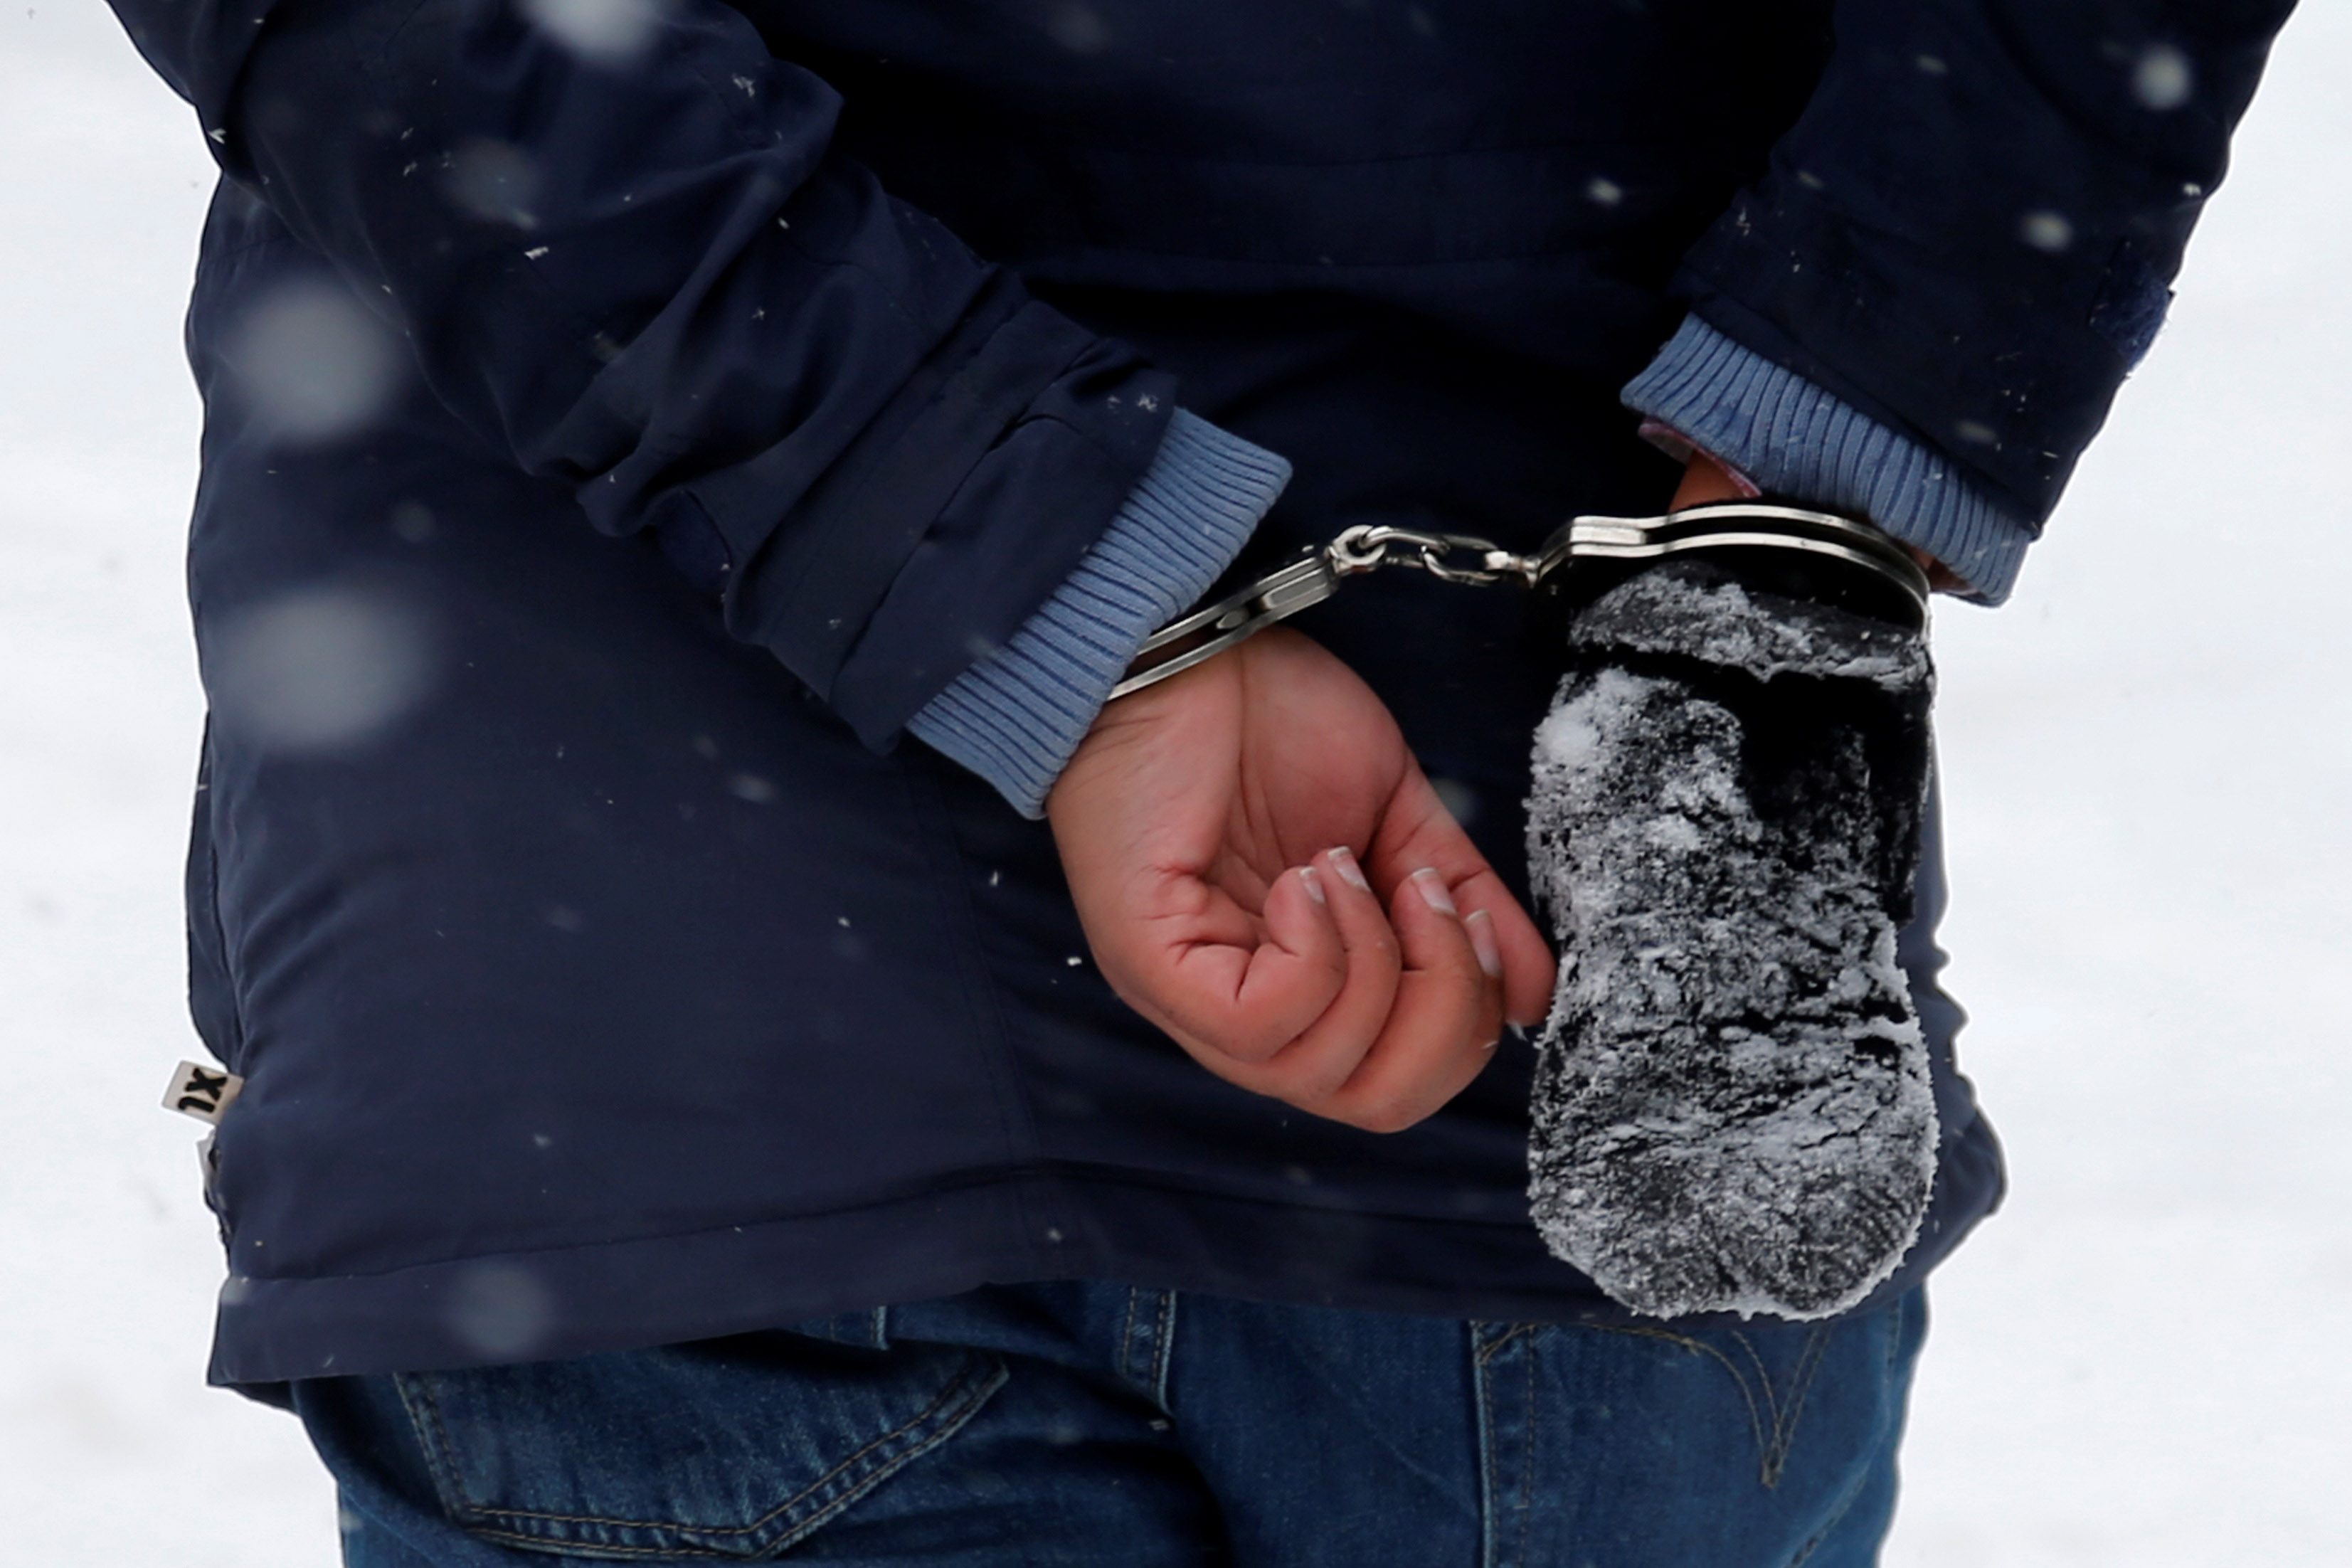 A man who told police that he was from Sudan is taken into custody by Royal Canadian Mounted Police (RCMP) officers after arriving by taxi and walking across the U.S.-Canada border into Hemmingford, Quebec, on Feb. 13, 2017.